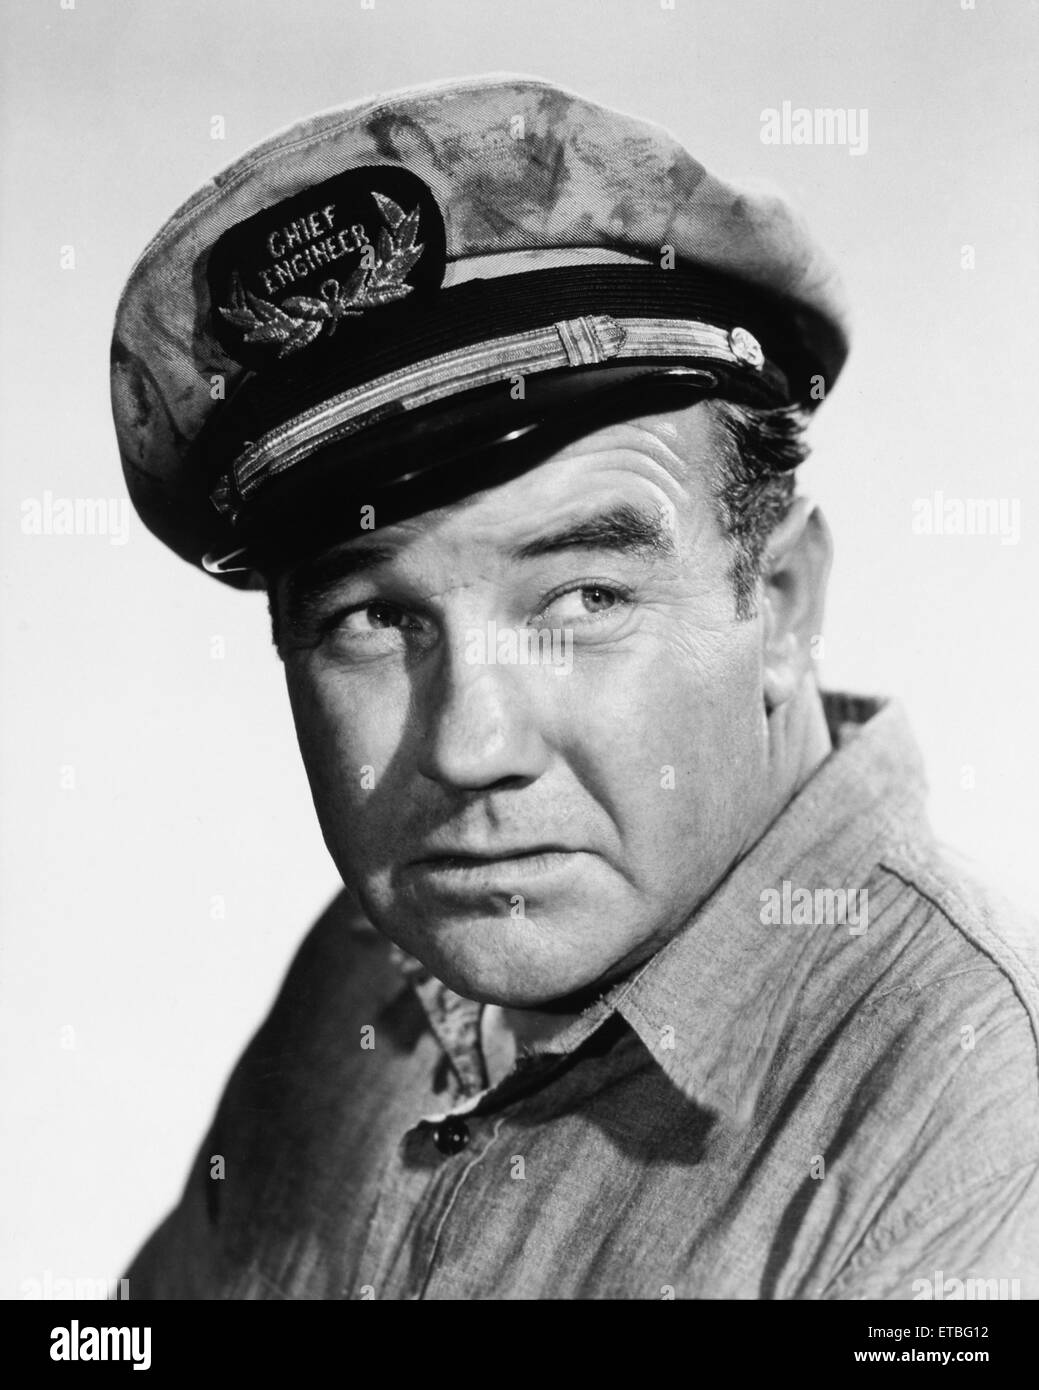 Broderick Crawford, Publicity Portrait for the Film 'Cargo to Capetown', 1950 - Stock Image